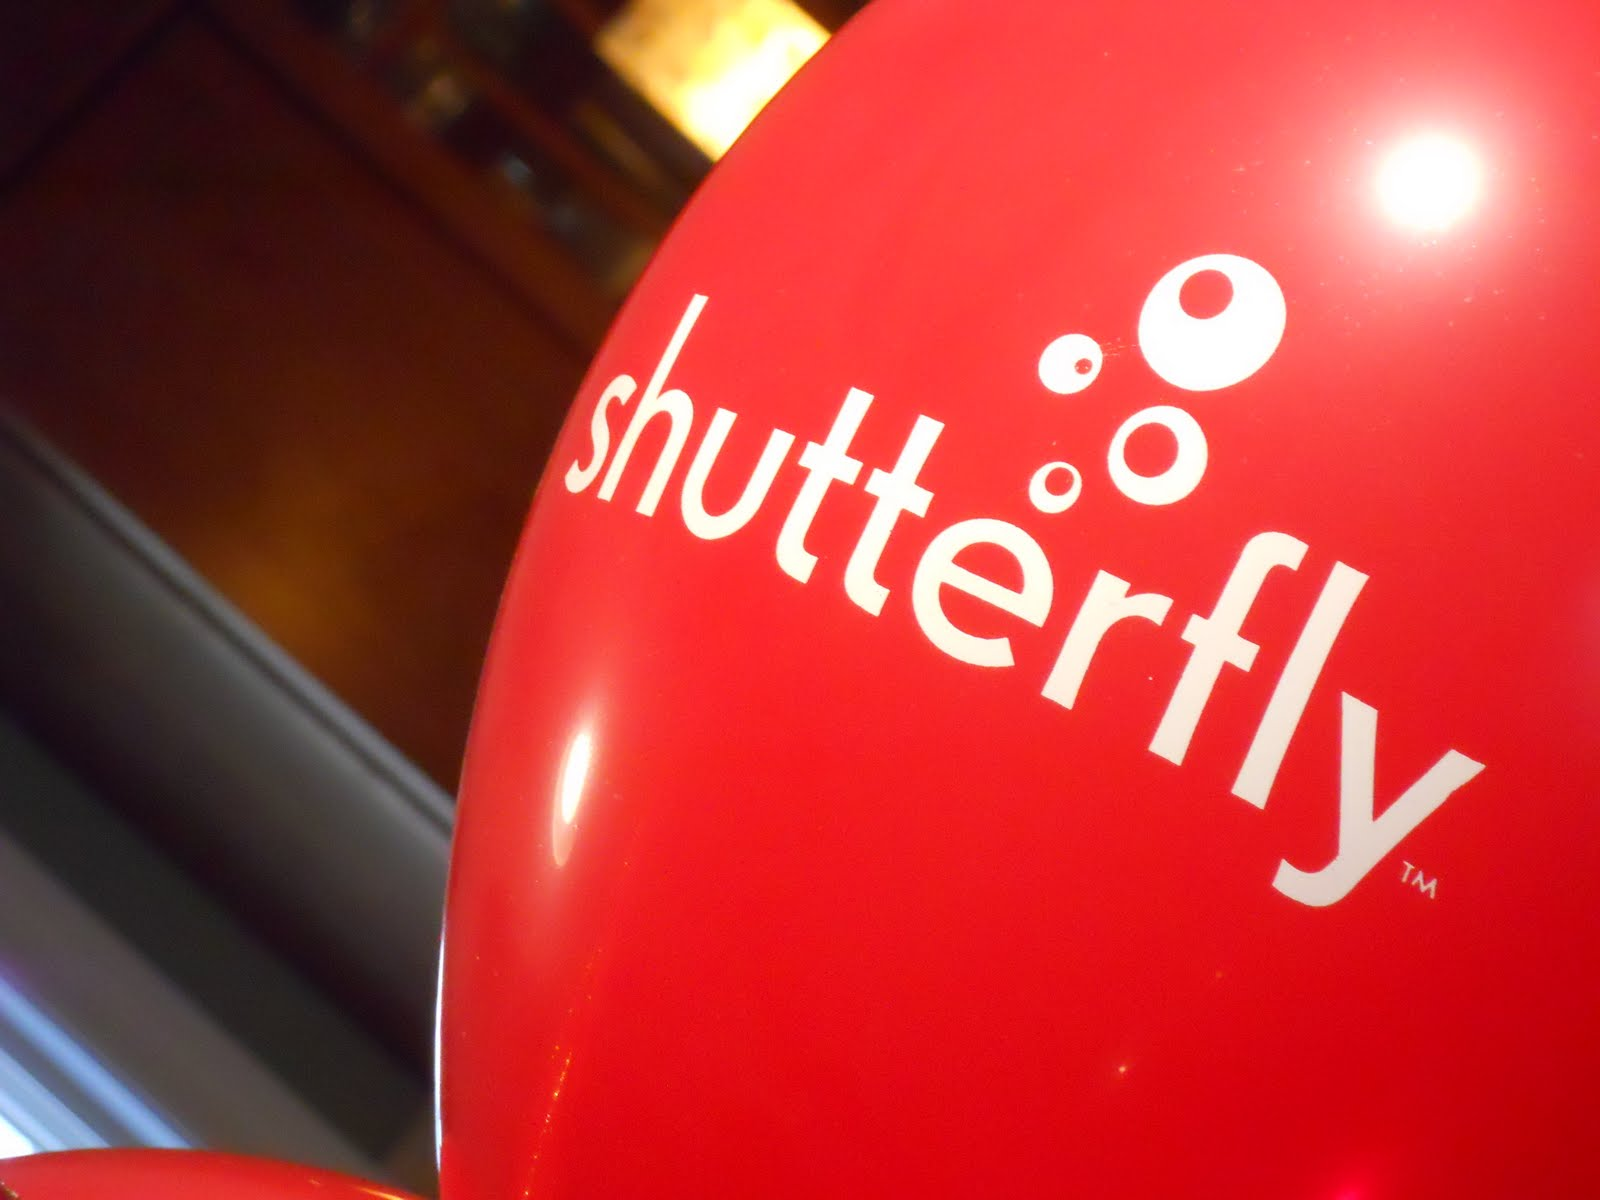 The latest Tweets from Shutterfly (@Shutterfly). Official Shutterfly page. Turn the photos you love into award-winning photo books, meaningful cards, imaginative photo gifts, home decor and so much more. Redwood City, CAAccount Status: Verified.